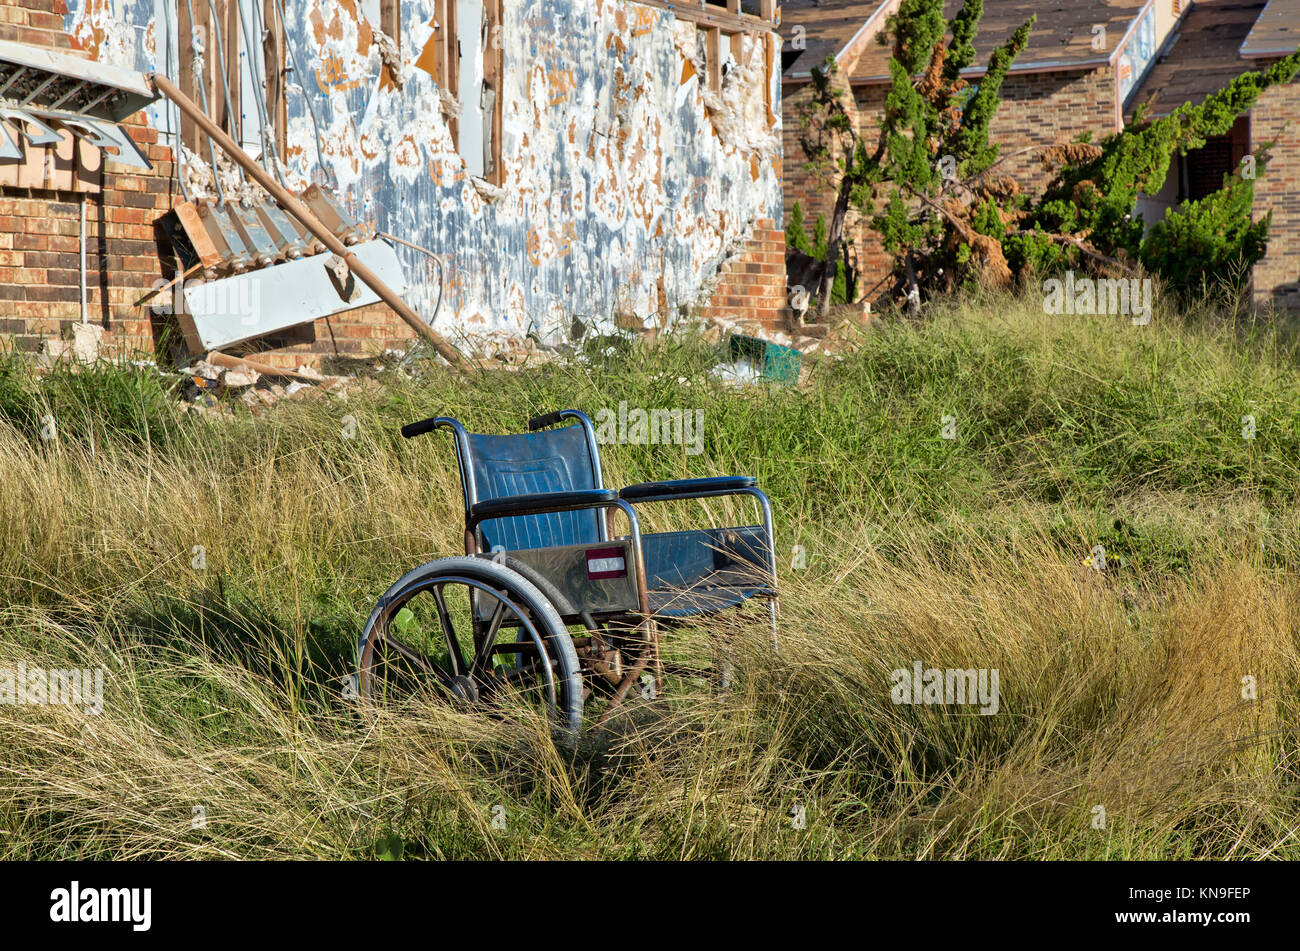 Abandoned wheelchair resting at destroyed housing complex, resulting from hurricane 'Harvey' 2017. - Stock Image